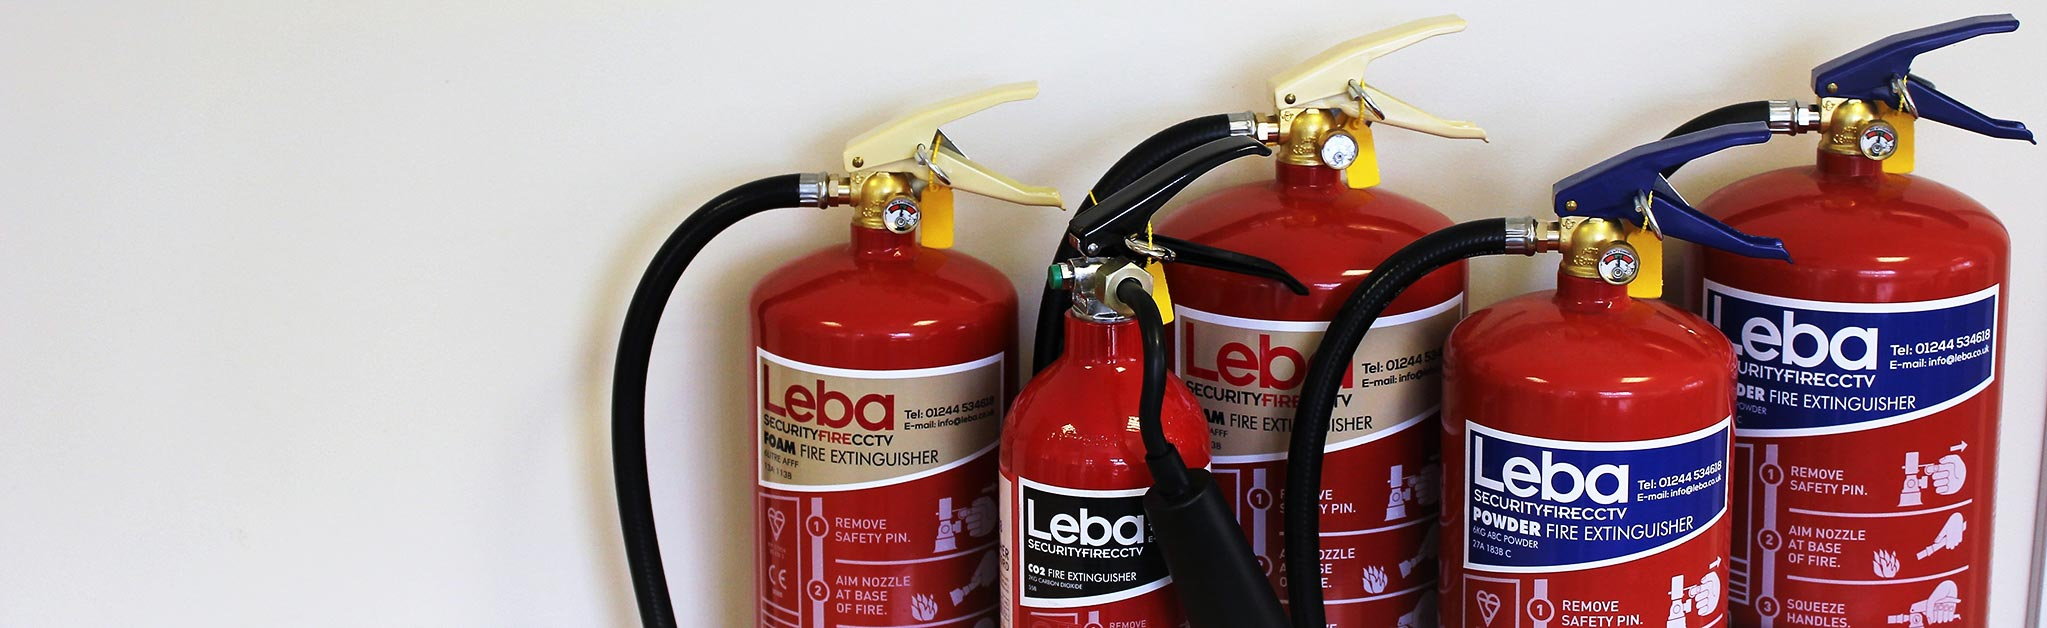 https://leba.co.uk/uploads/images/head-slides/Slide_Fire-Extinguishers.jpg